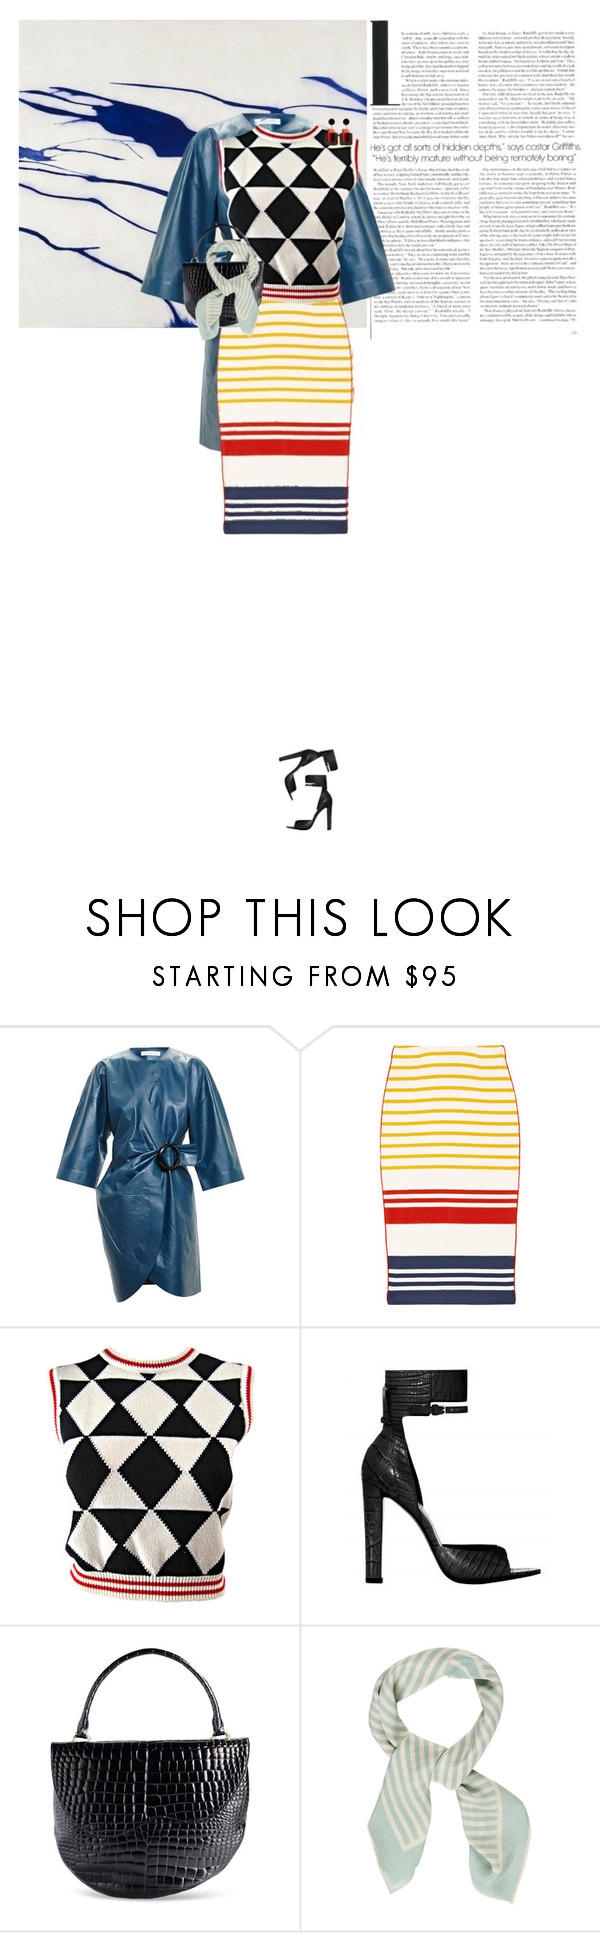 """Untitled #1121"" by elifuks ❤ liked on Polyvore featuring Radcliffe, J.W. Anderson, By Malene Birger, Versace, Alexander Wang, Simone Rocha, Burberry and Marni"